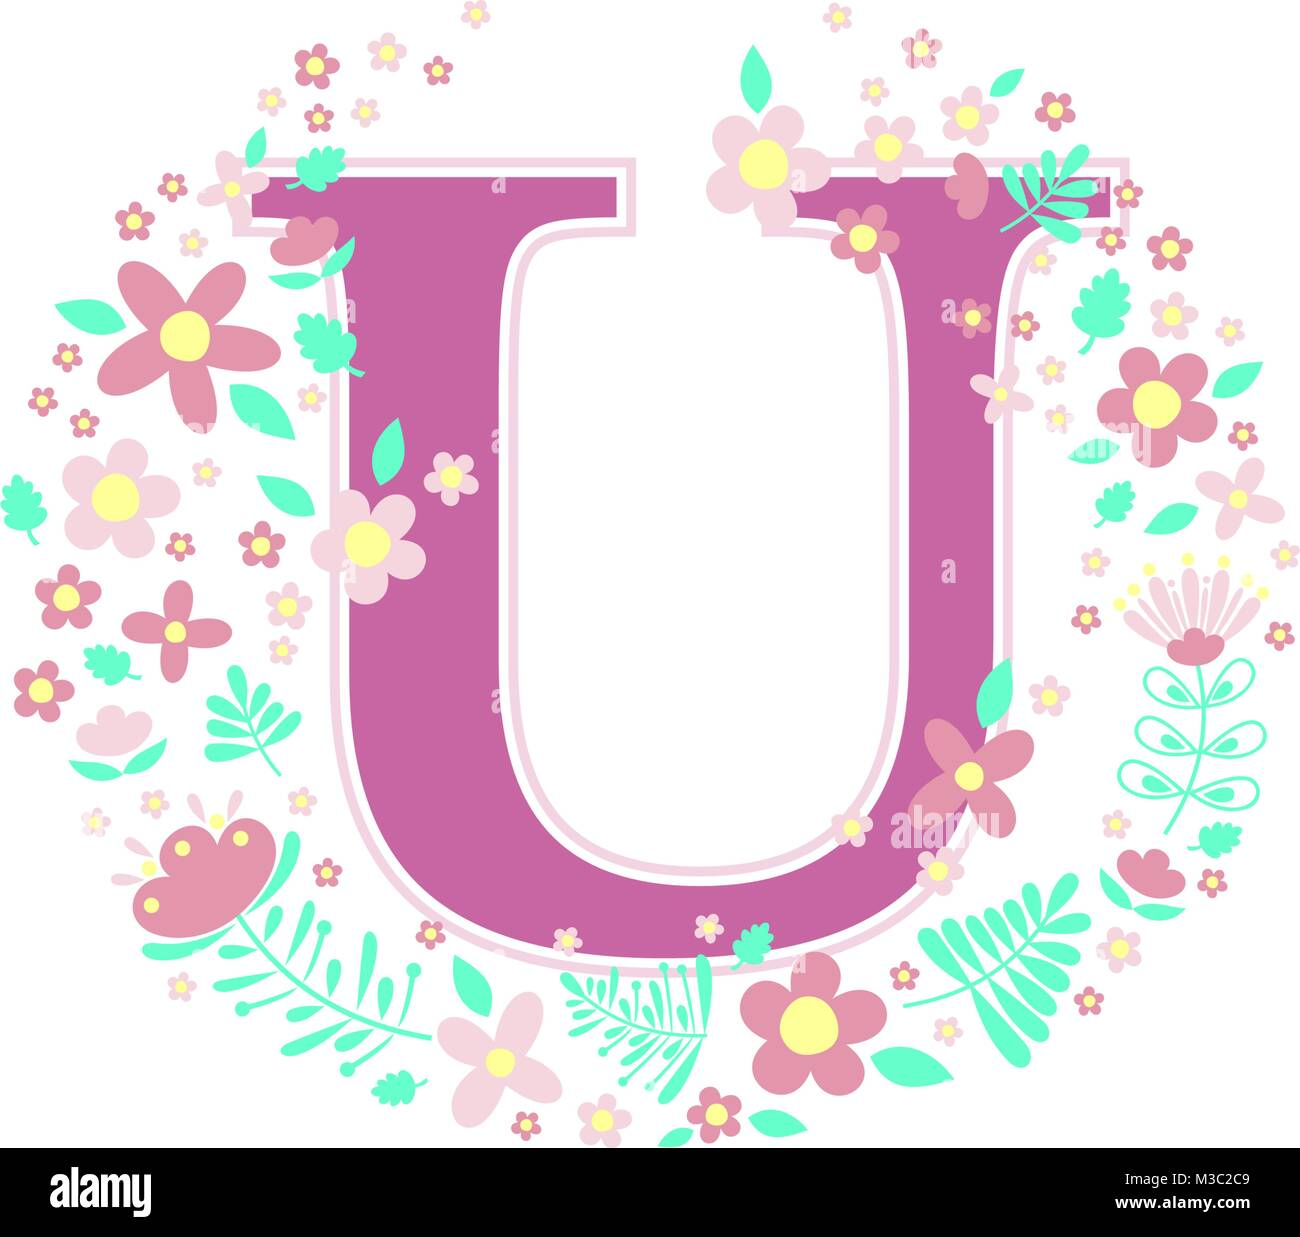 Initial Letter U With Decorative Flowers And Design Elements